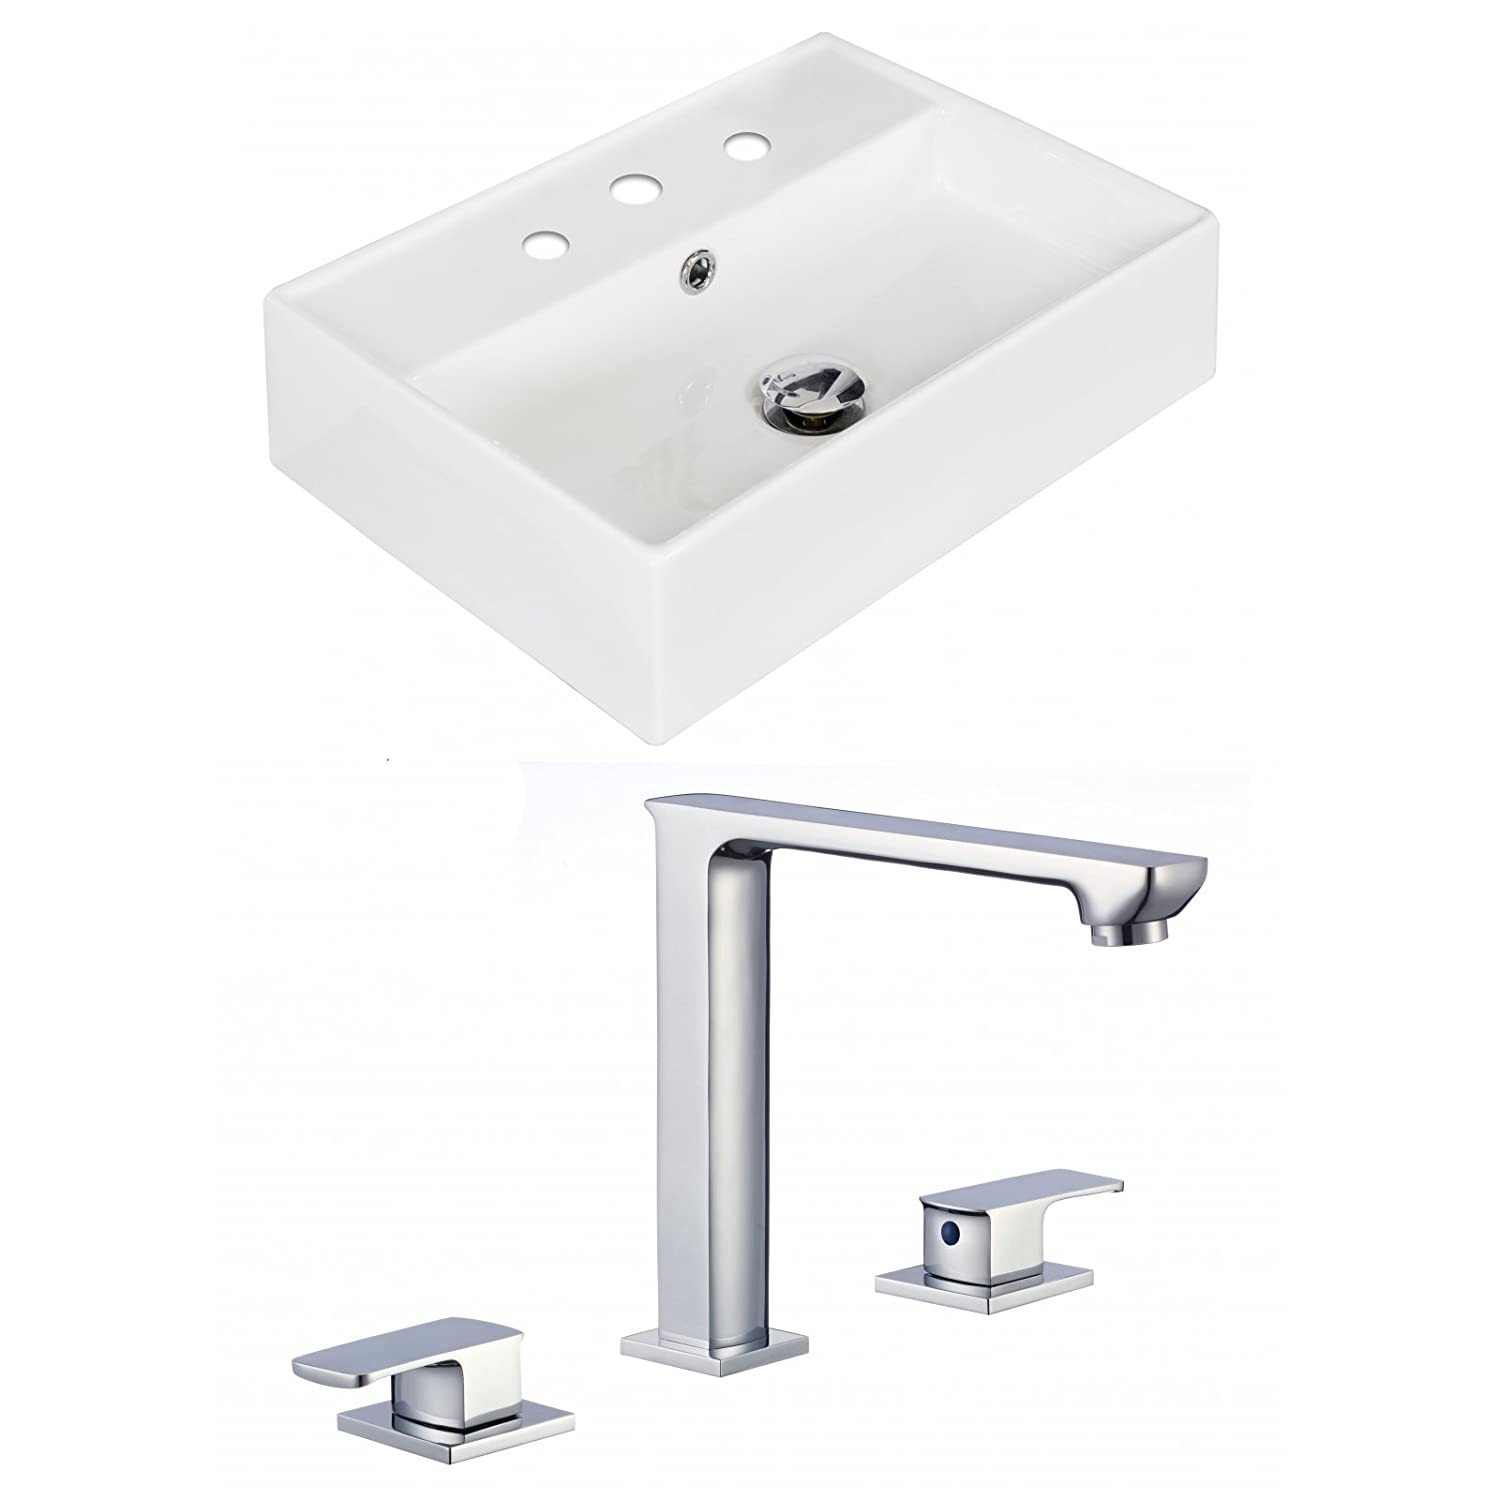 "good Jade Bath JB-17890 20"" W x 14"" D Rectangle Vessel Set with 8"" o.c. CUPC Faucet, White"